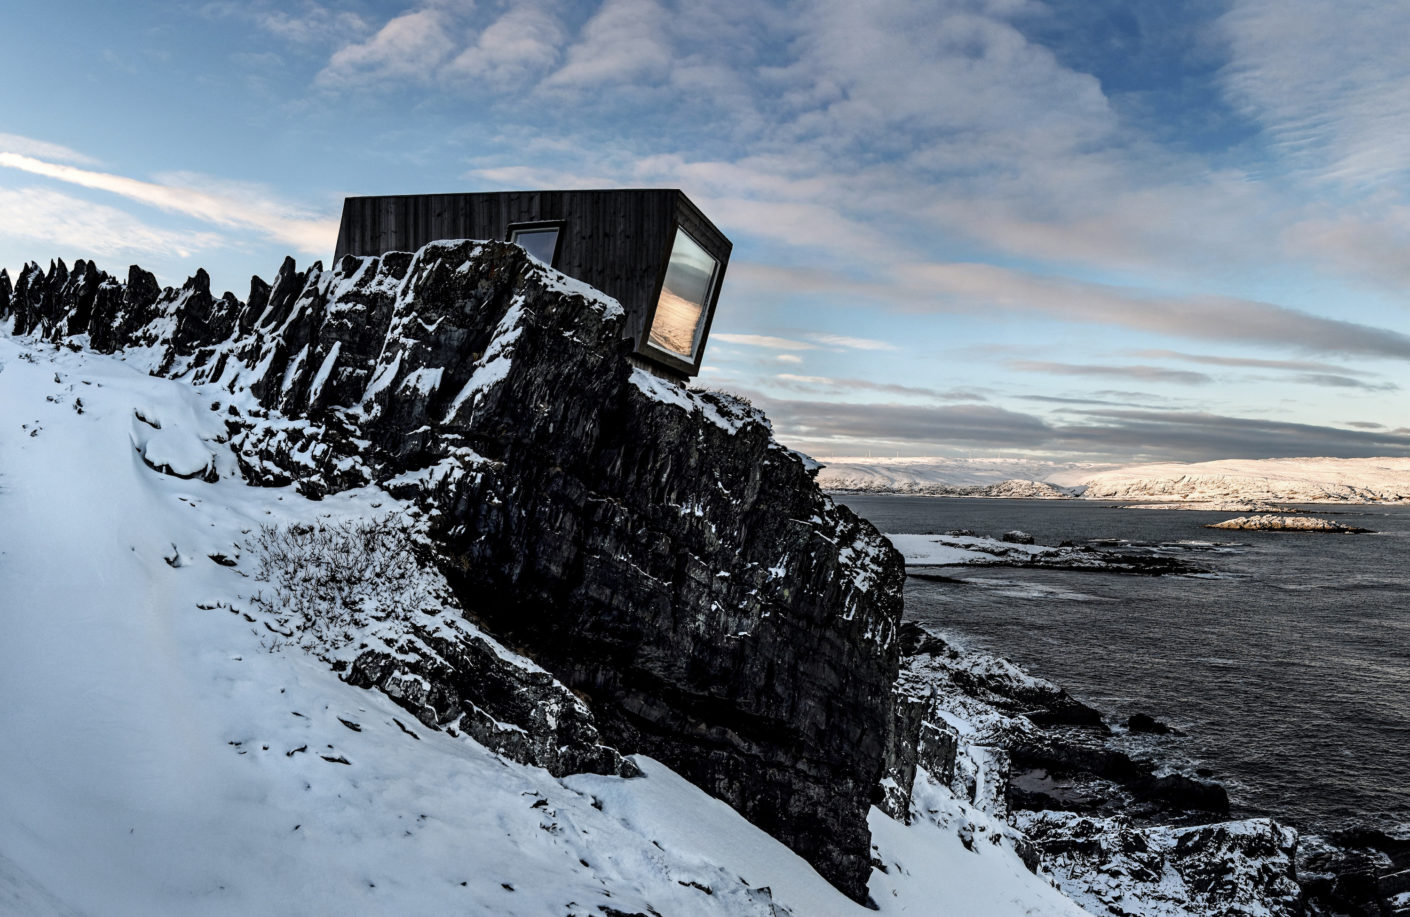 Superb view: The shelter is perched above the Kongsfjord like a piece of black wood.